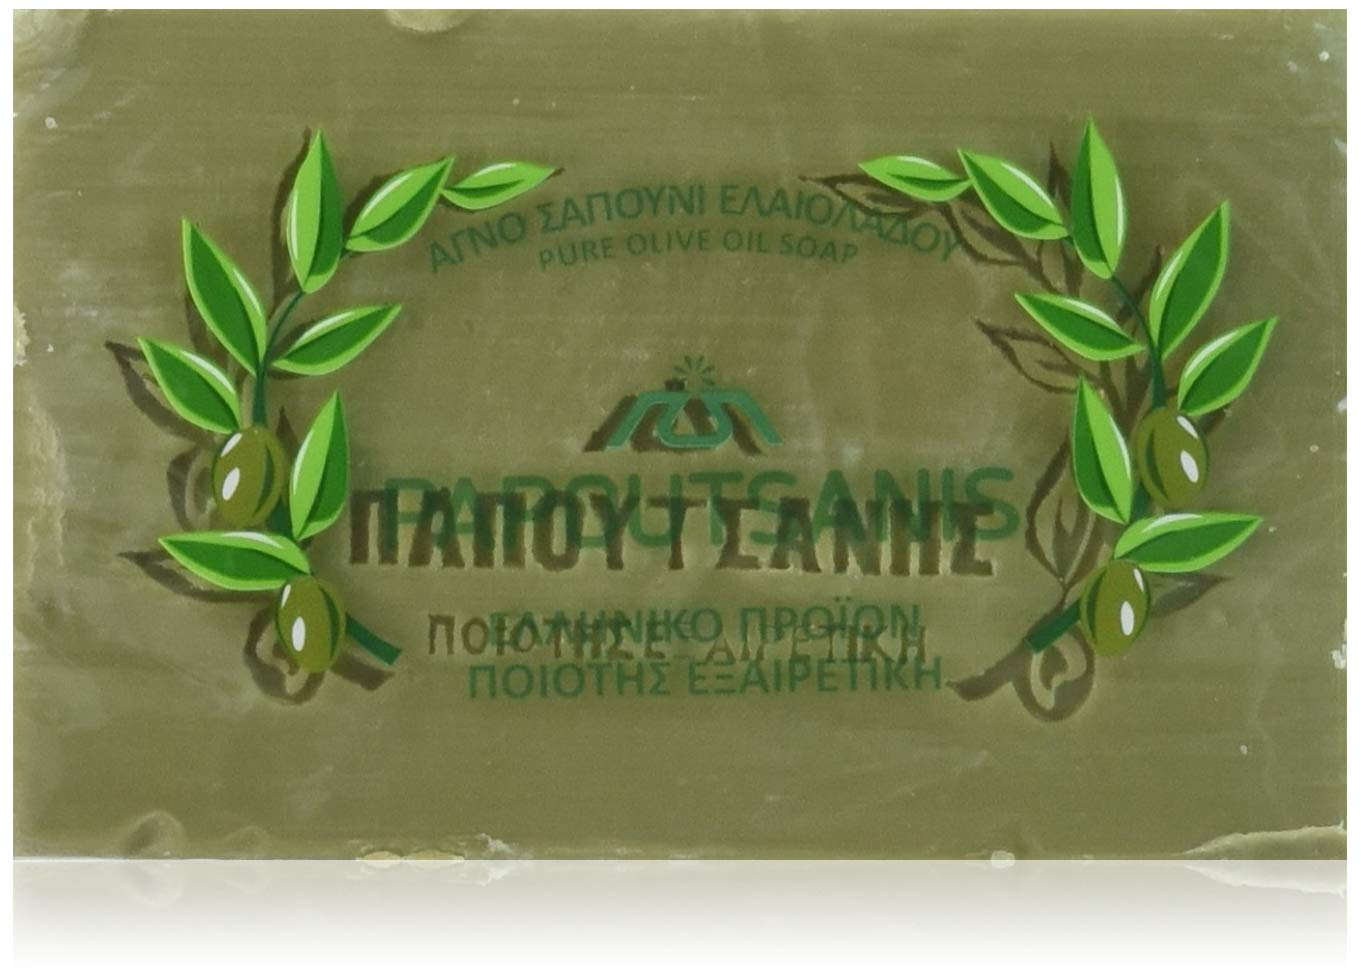 Papoutsanis Pure Greek Olive Soap